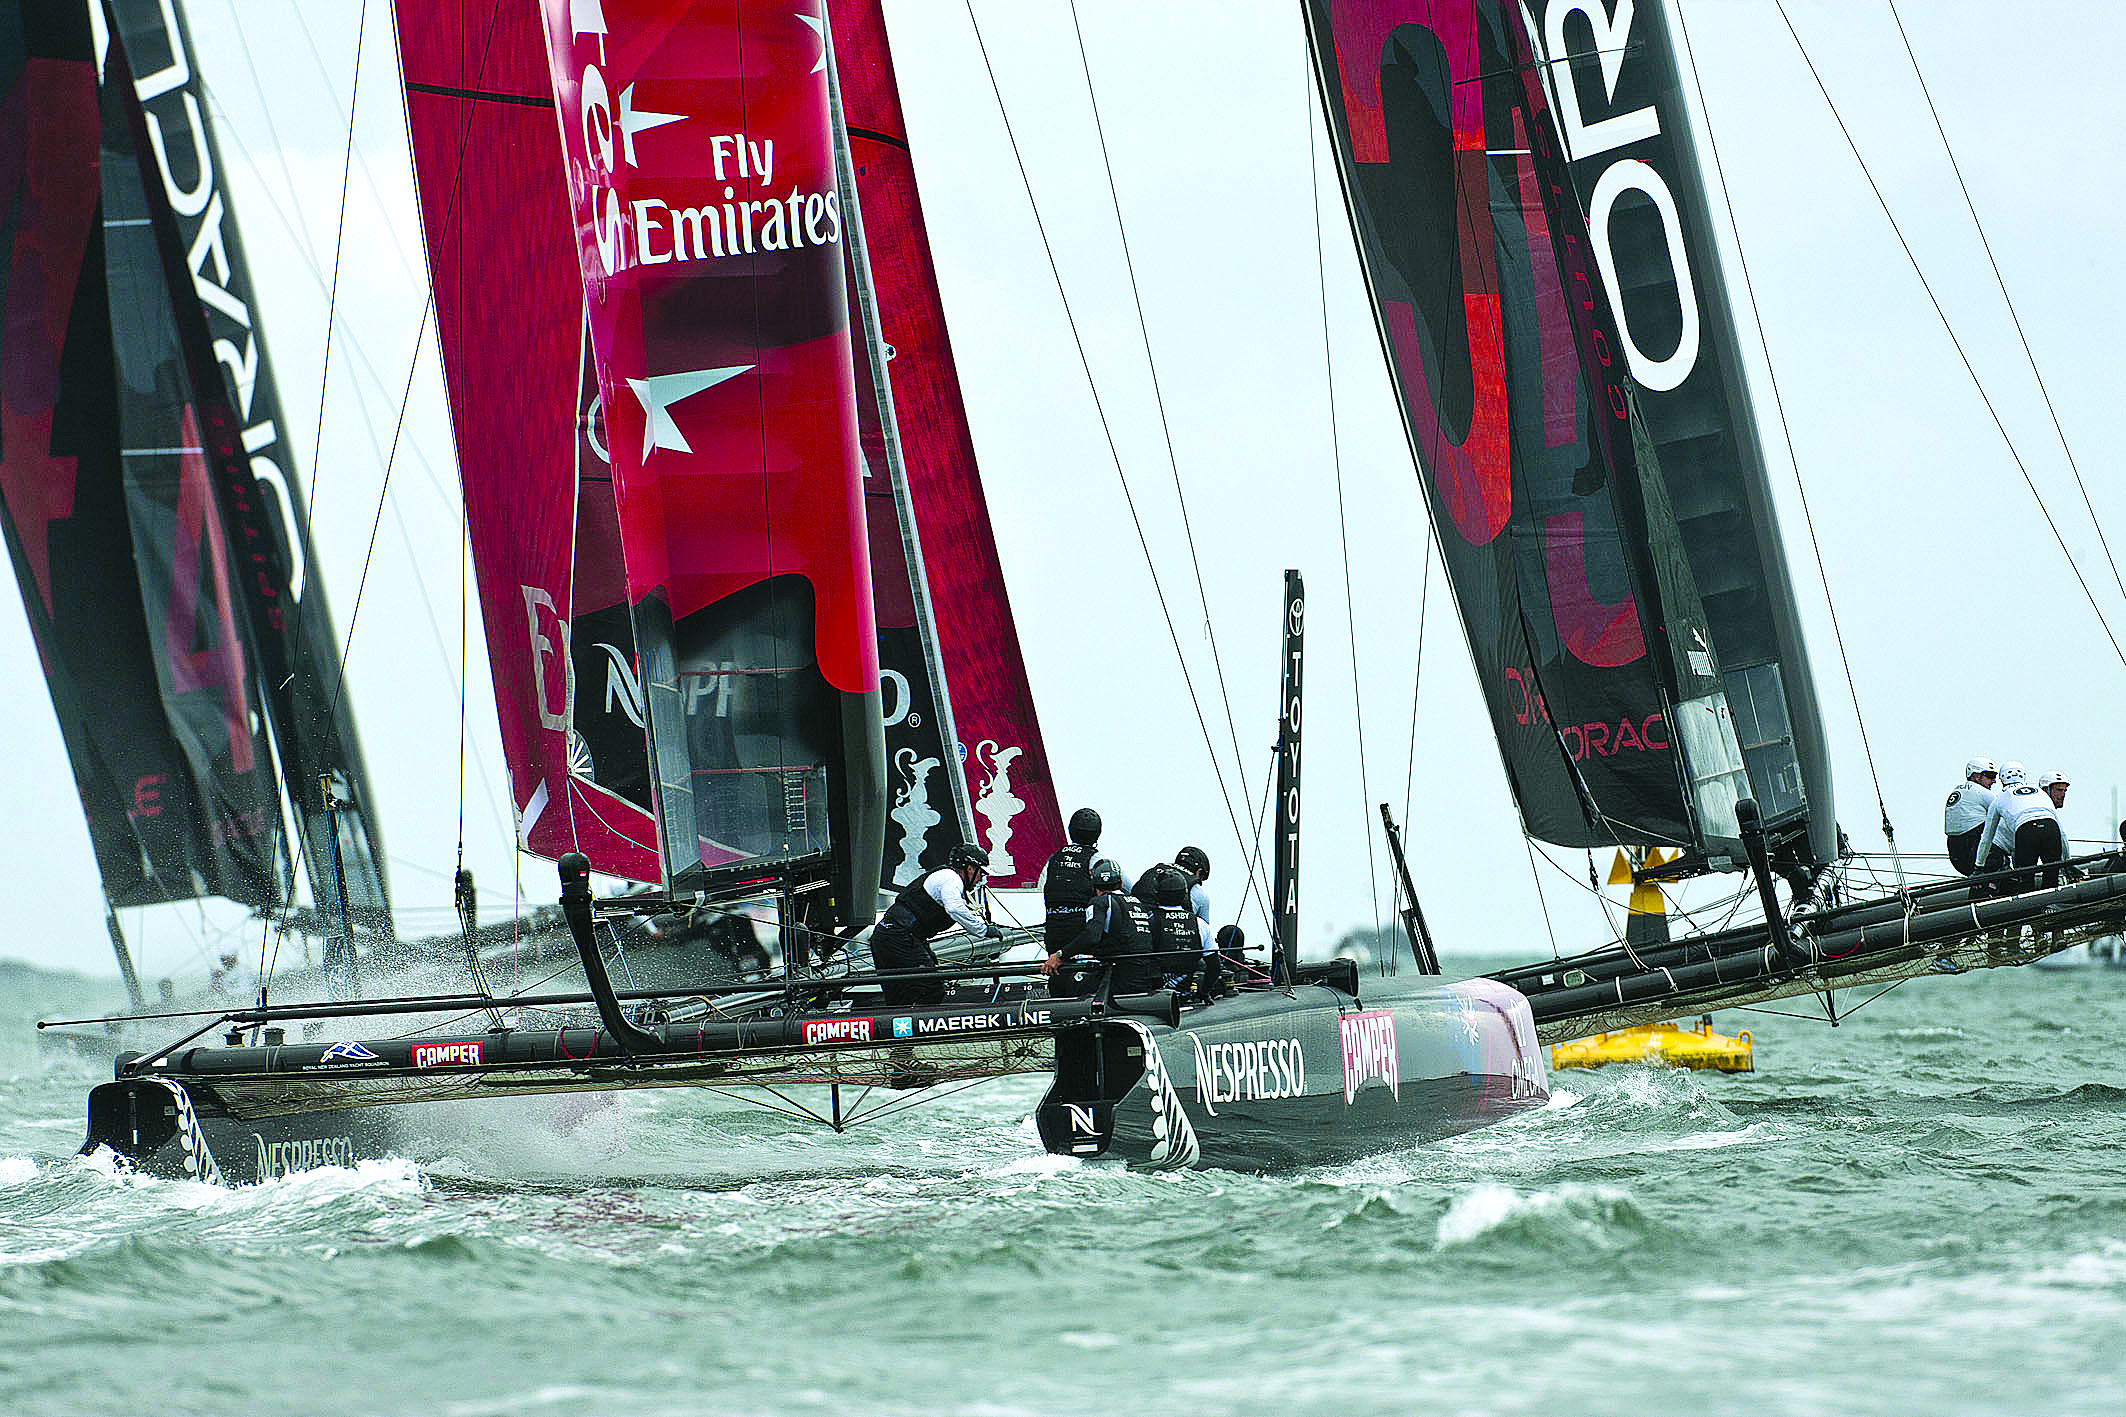 Italy's Luna Rossa Challenges for America's Cup